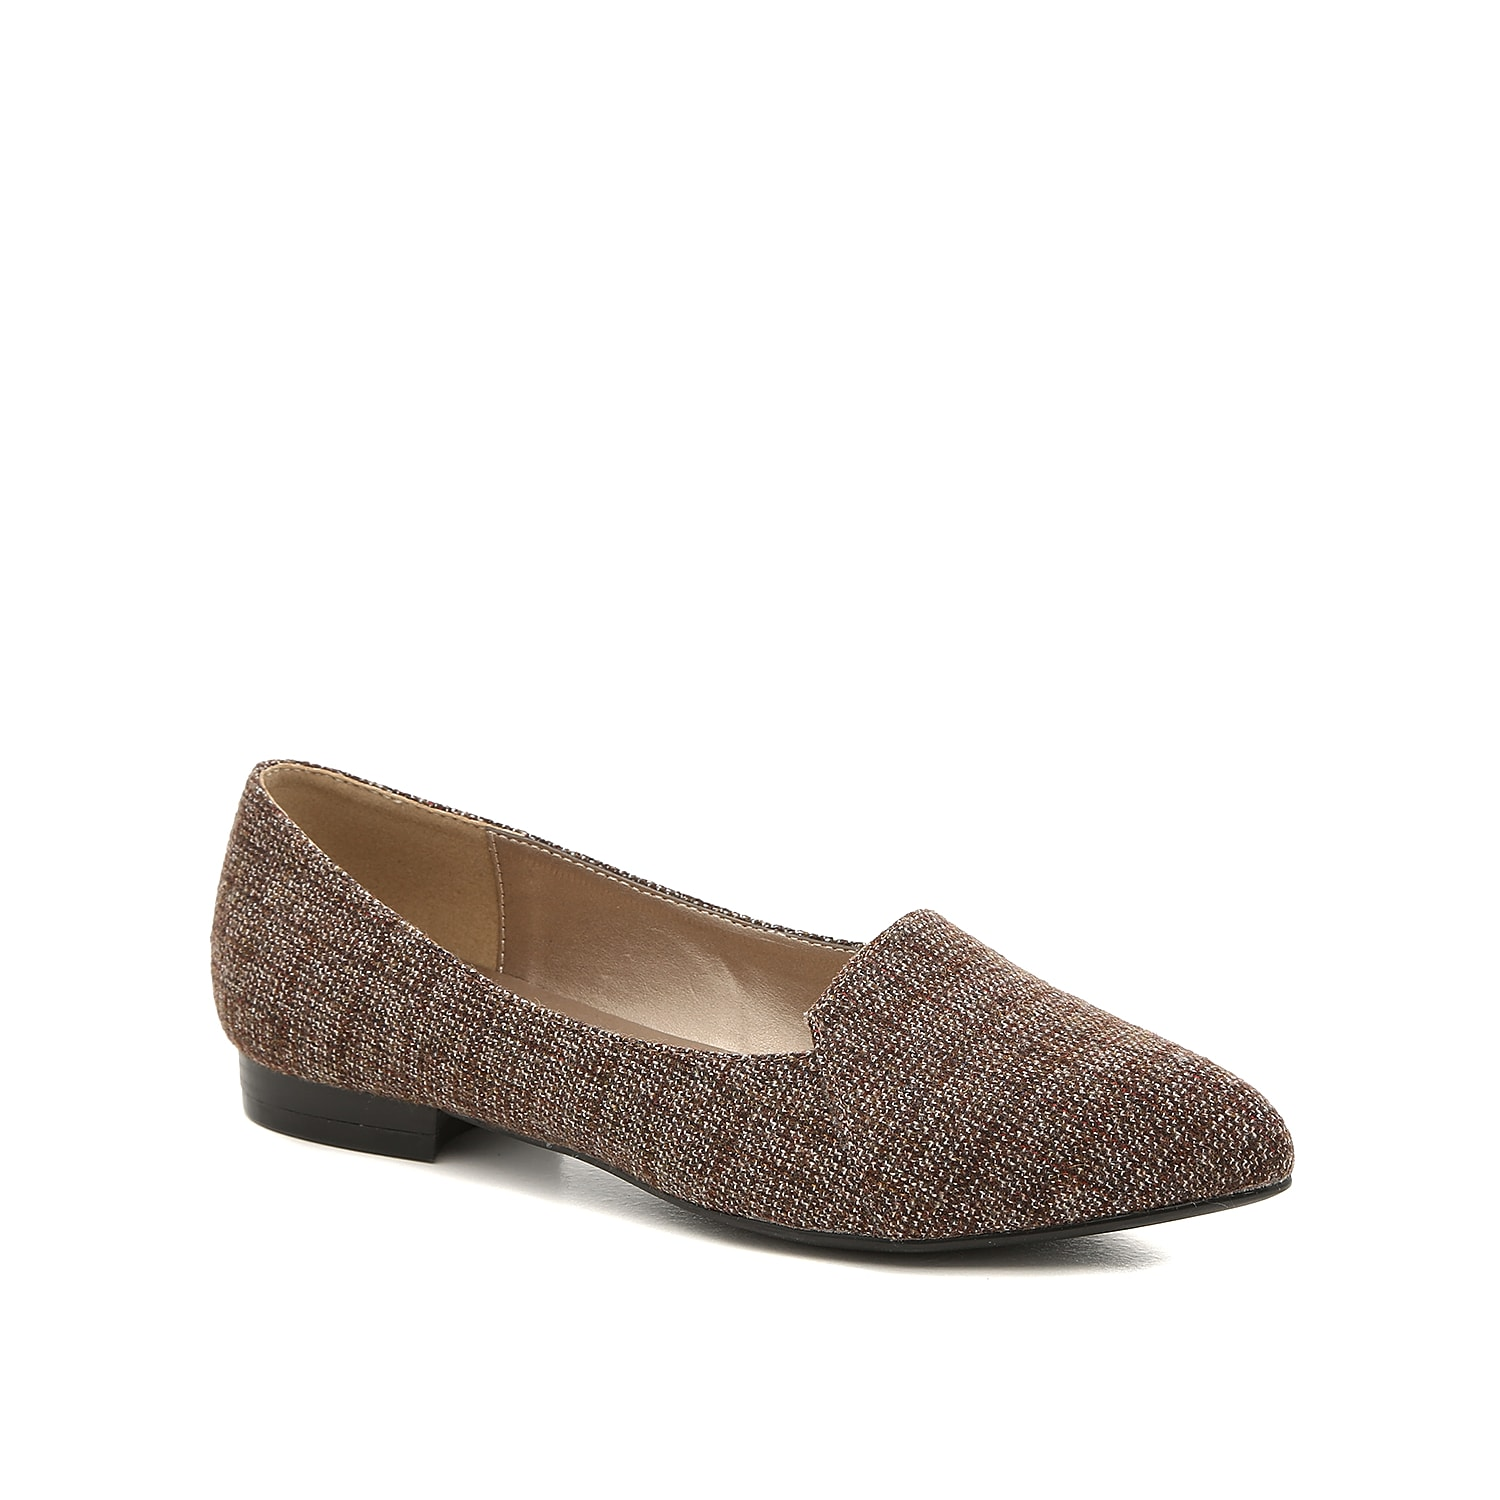 Enlighten your ensemble with the Floral loafer from Bellini. This flat is fashioned with a tweed fabric upper and a perfectly pointed toe that will accentuate your outfit!